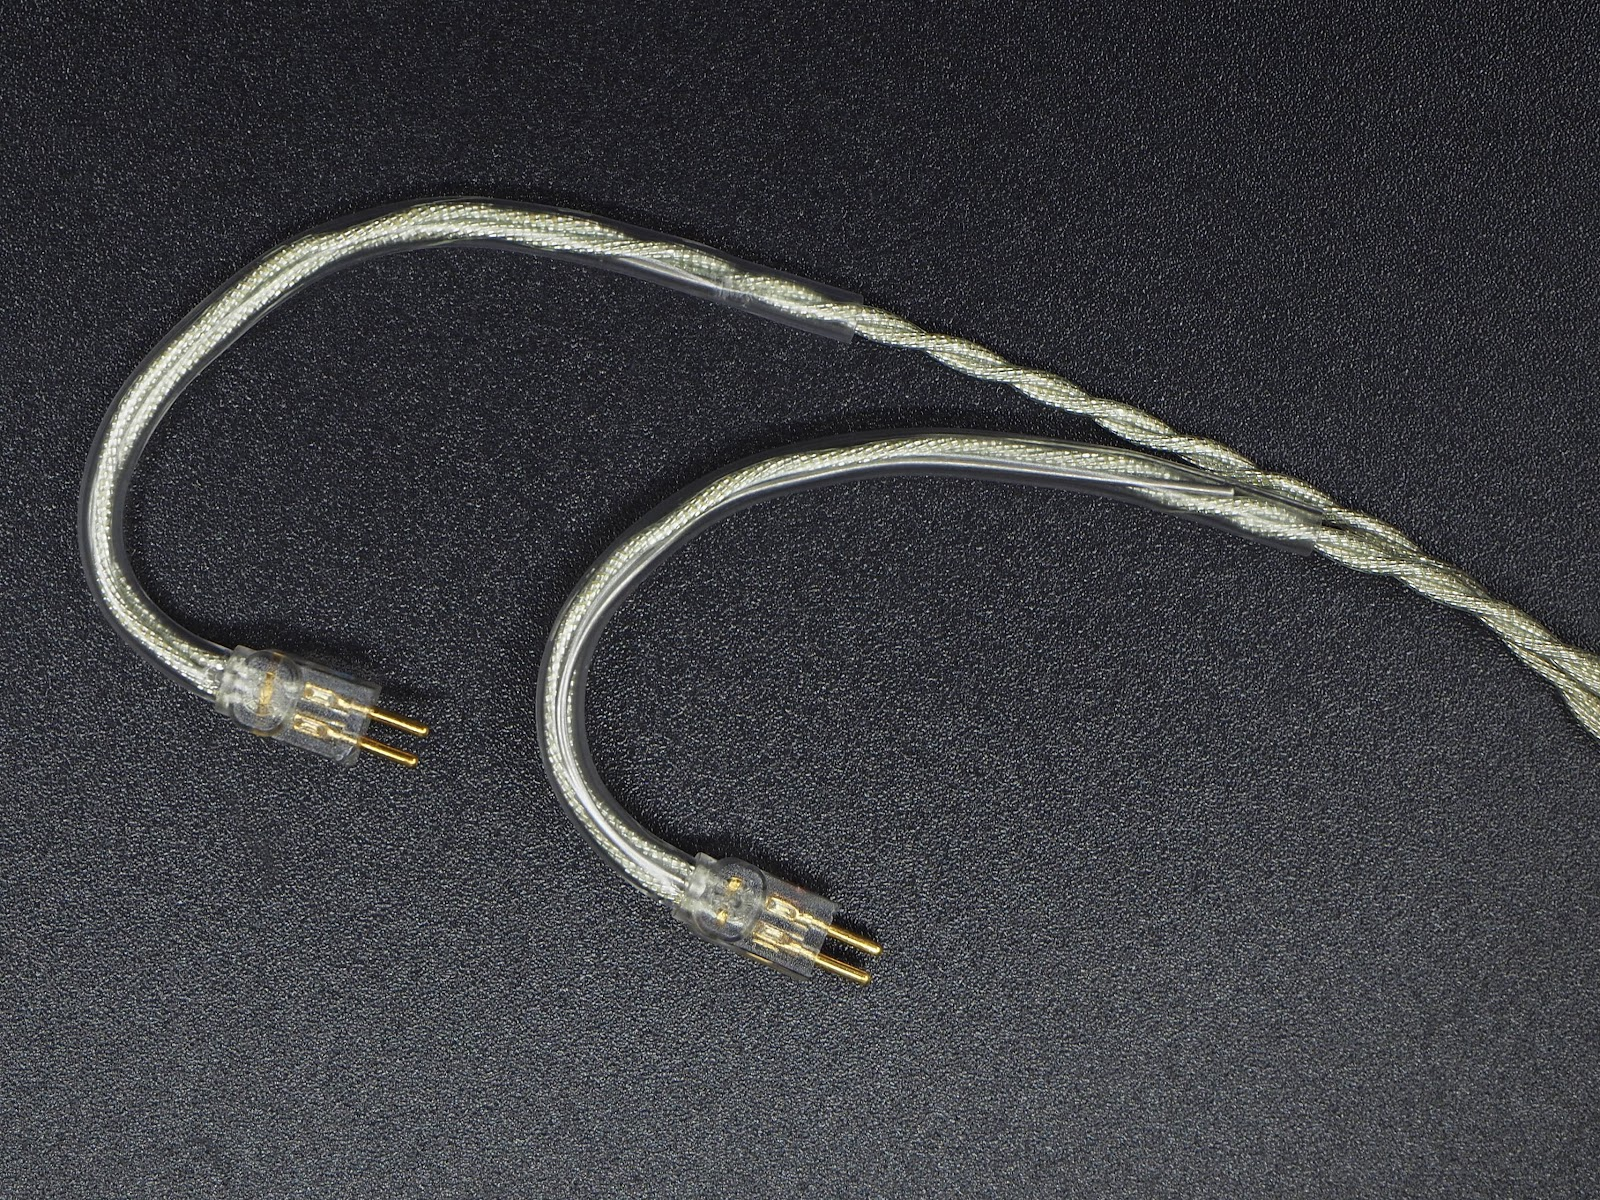 The 2-pin connector